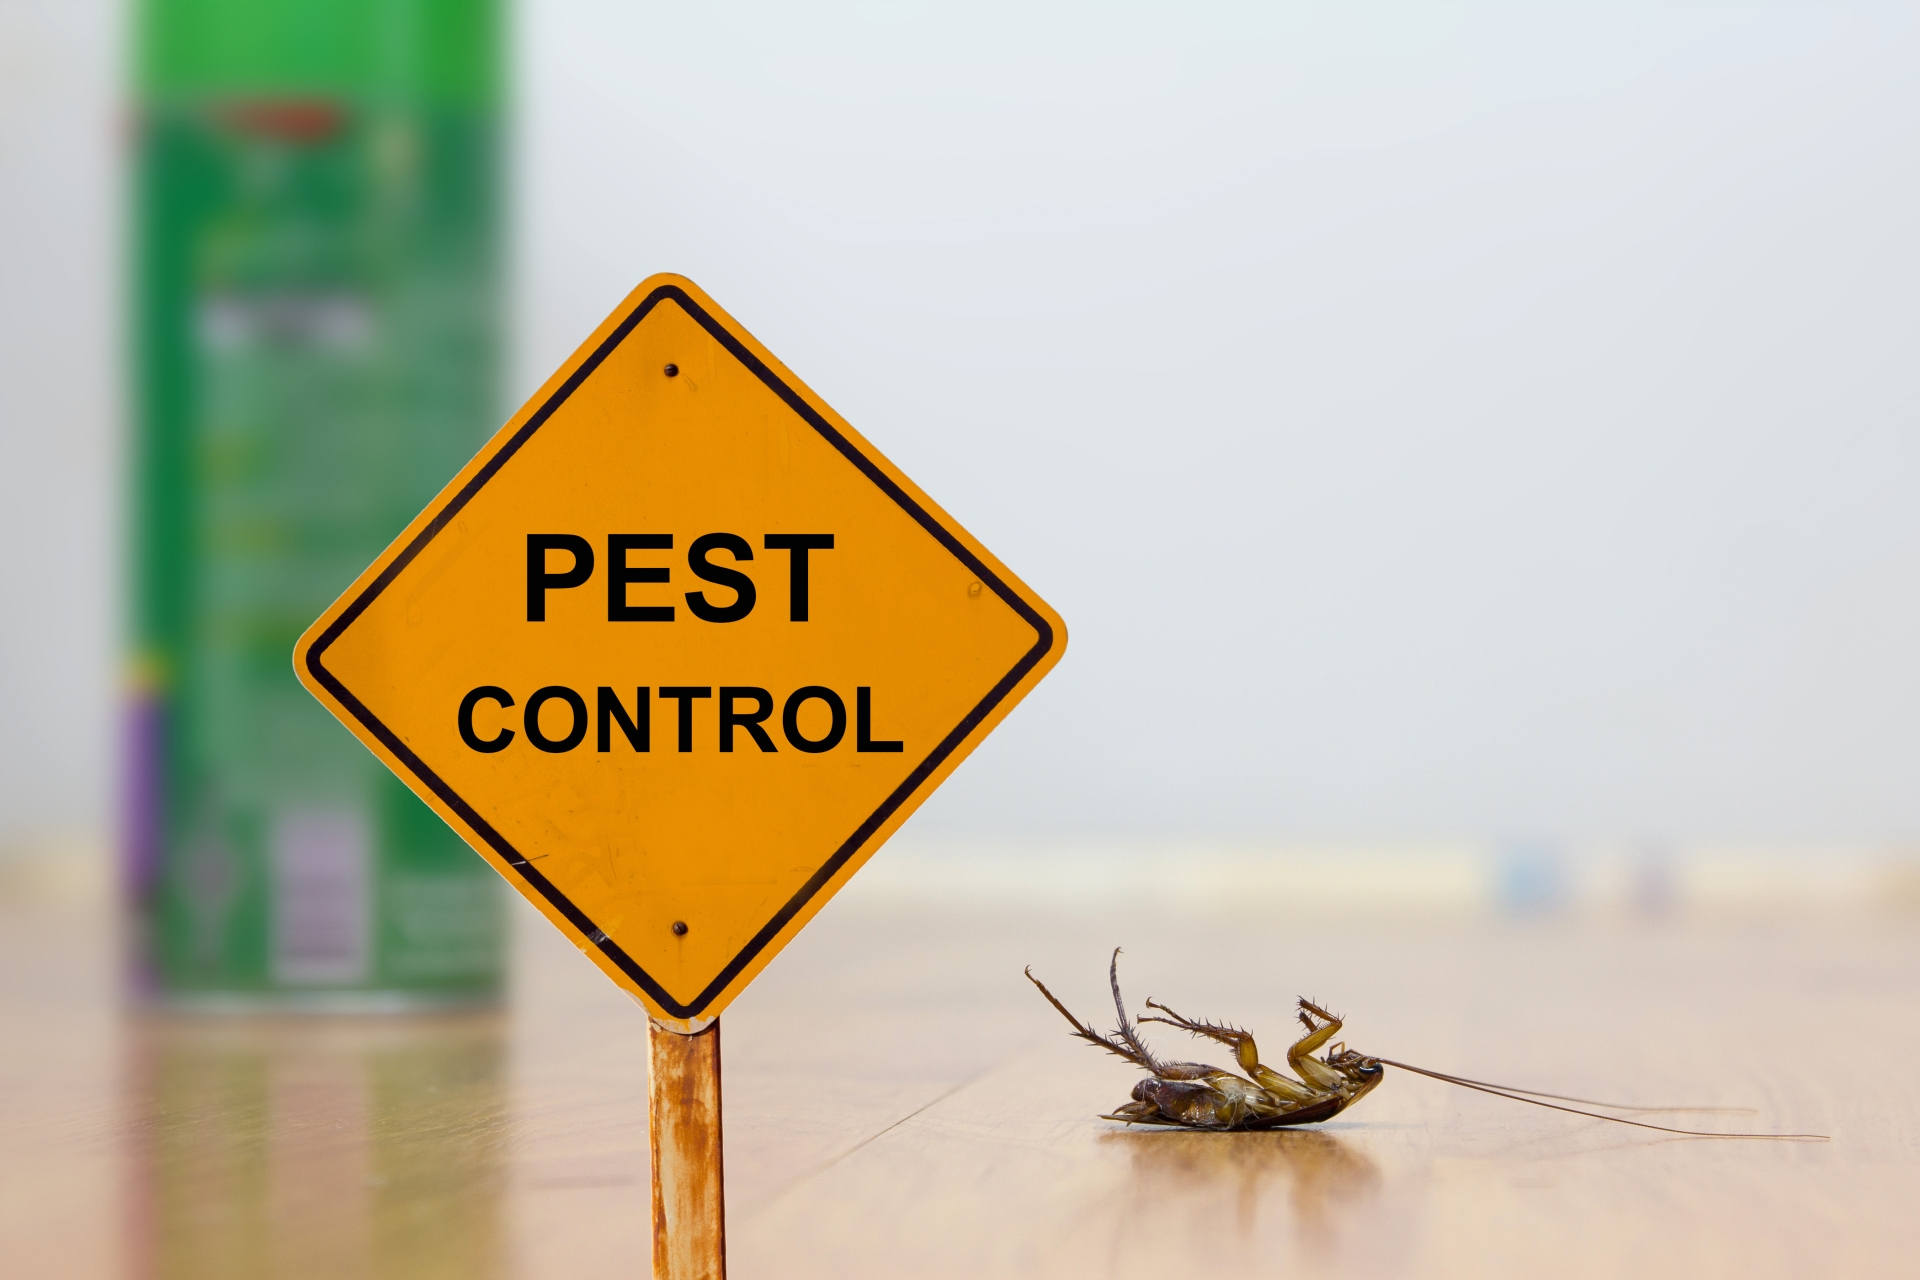 24 Hour Pest Control, Pest Control in Winchmore Hill, N21. Call Now 020 8166 9746